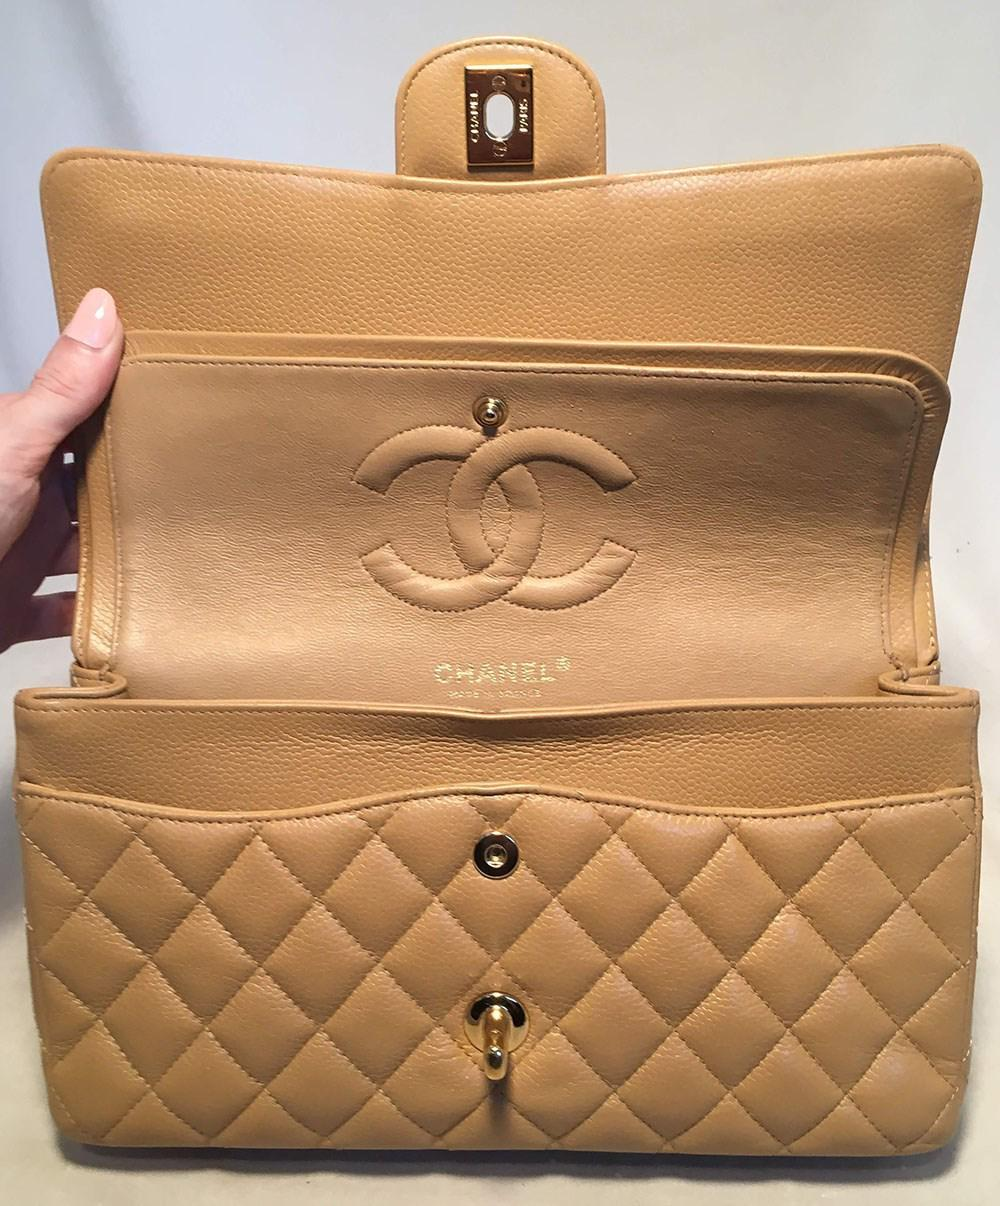 fb6215f321b9 Chanel Tan 10inch Quilted Caviar 2.55 Double Flap Classic Shoulder ...